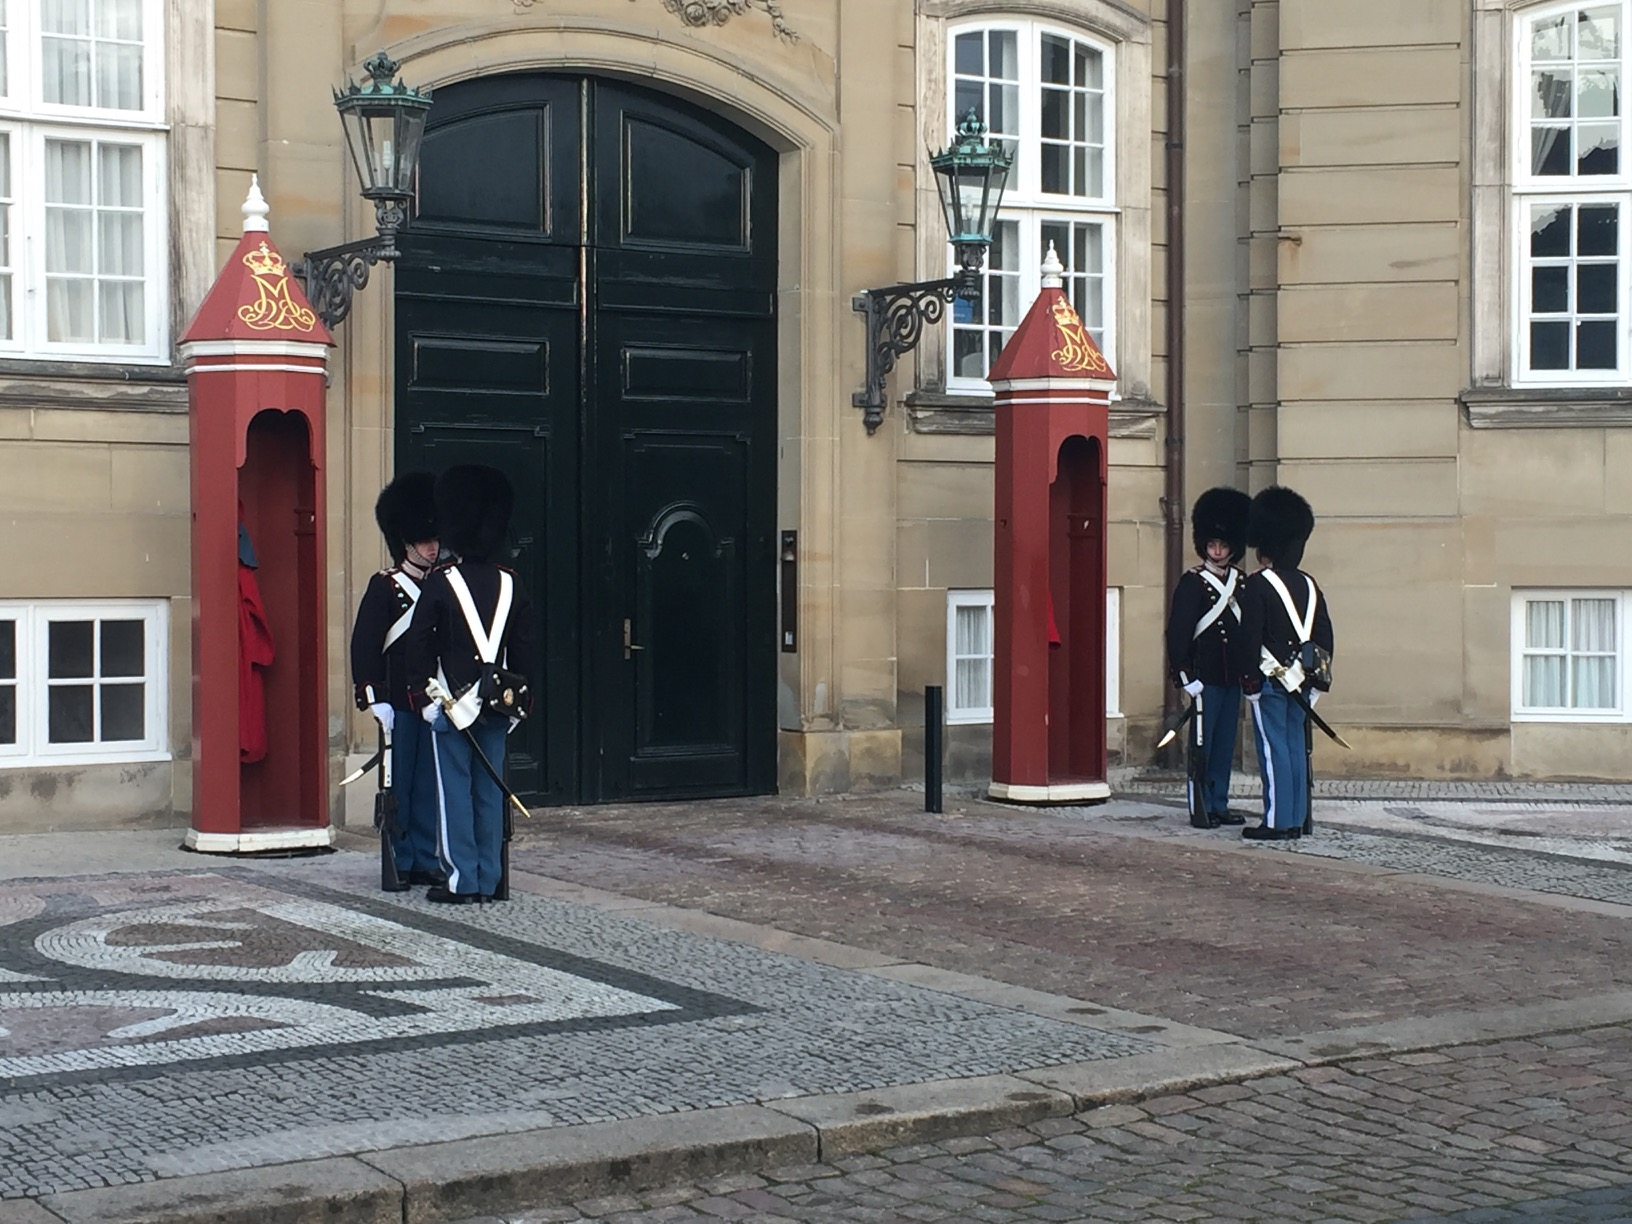 Two pairs of guards dressed in blue pants, black jackets, and tall, furry hats, face one another before two red booths a wide, black doorway into a stone building.